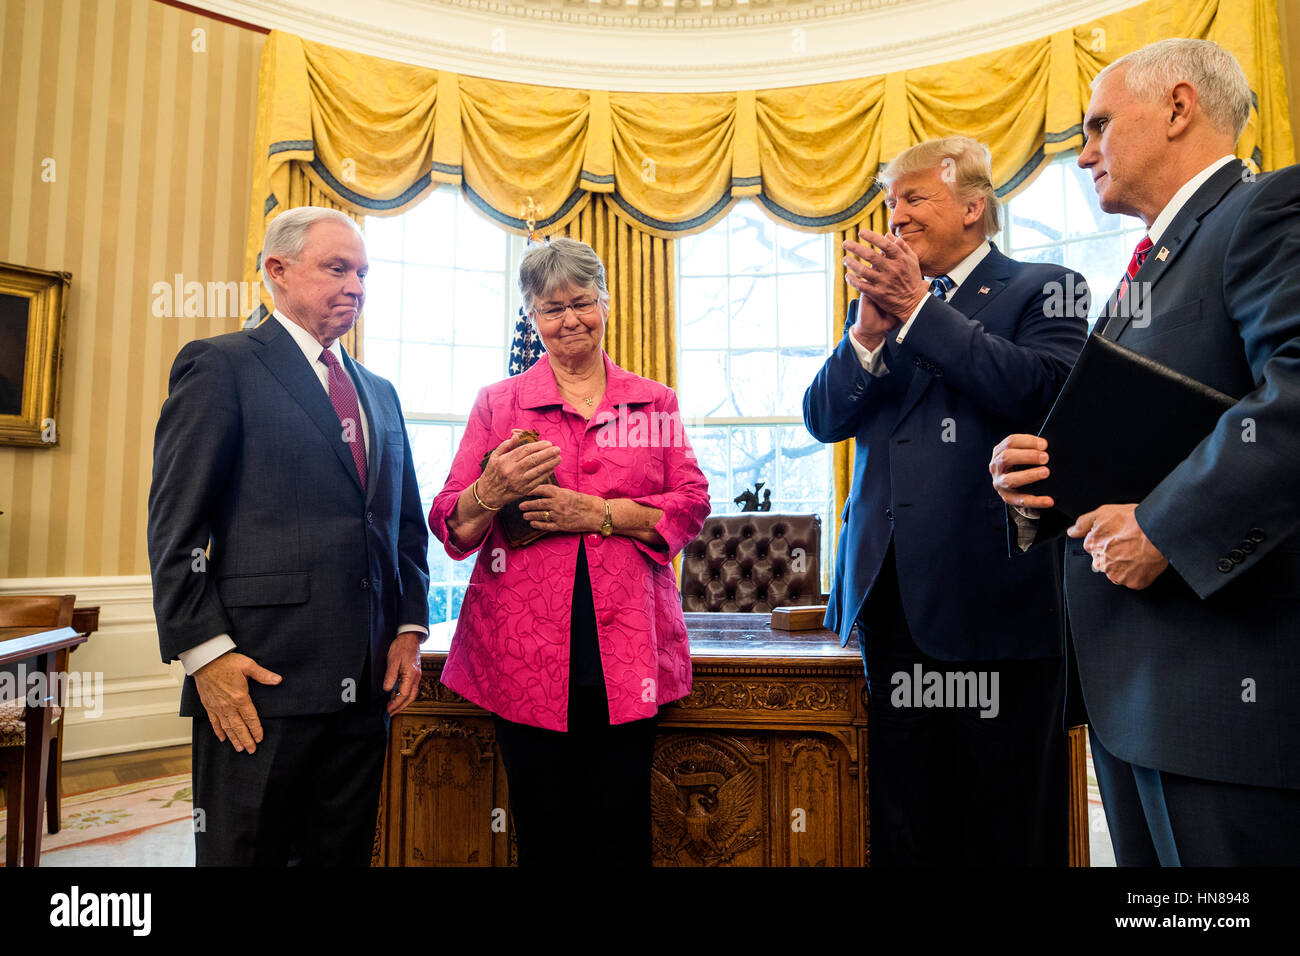 Trump Oval Office Pictures Attorney General Jeff Sessions L Smiles While Sessions